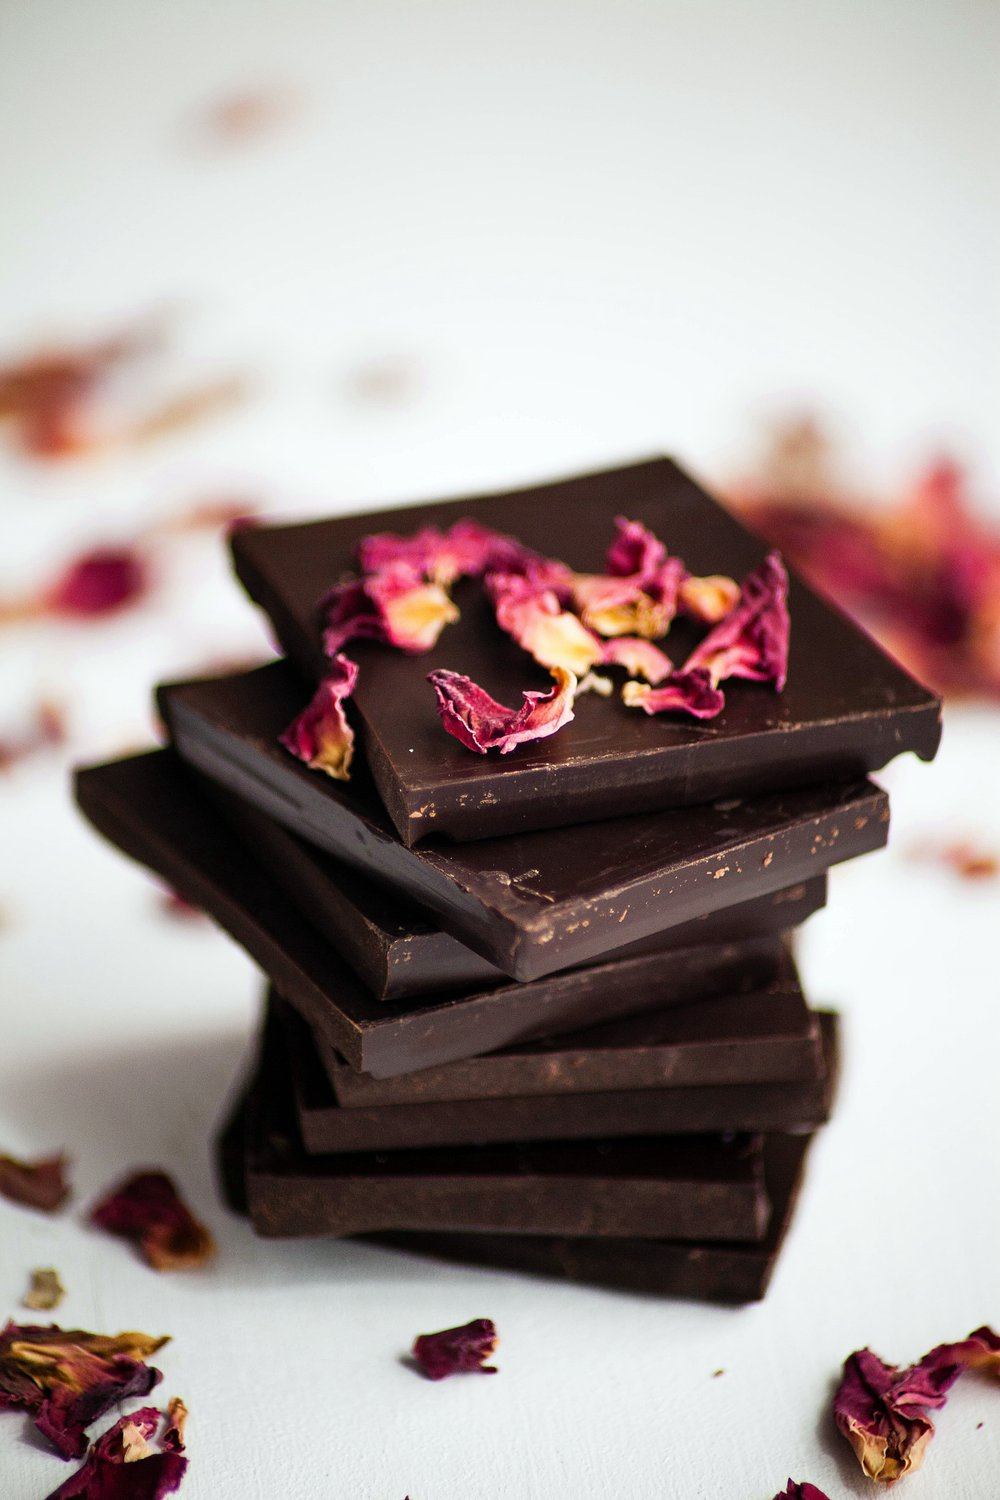 Dark chocolate bars with dried rose petals_.jpg